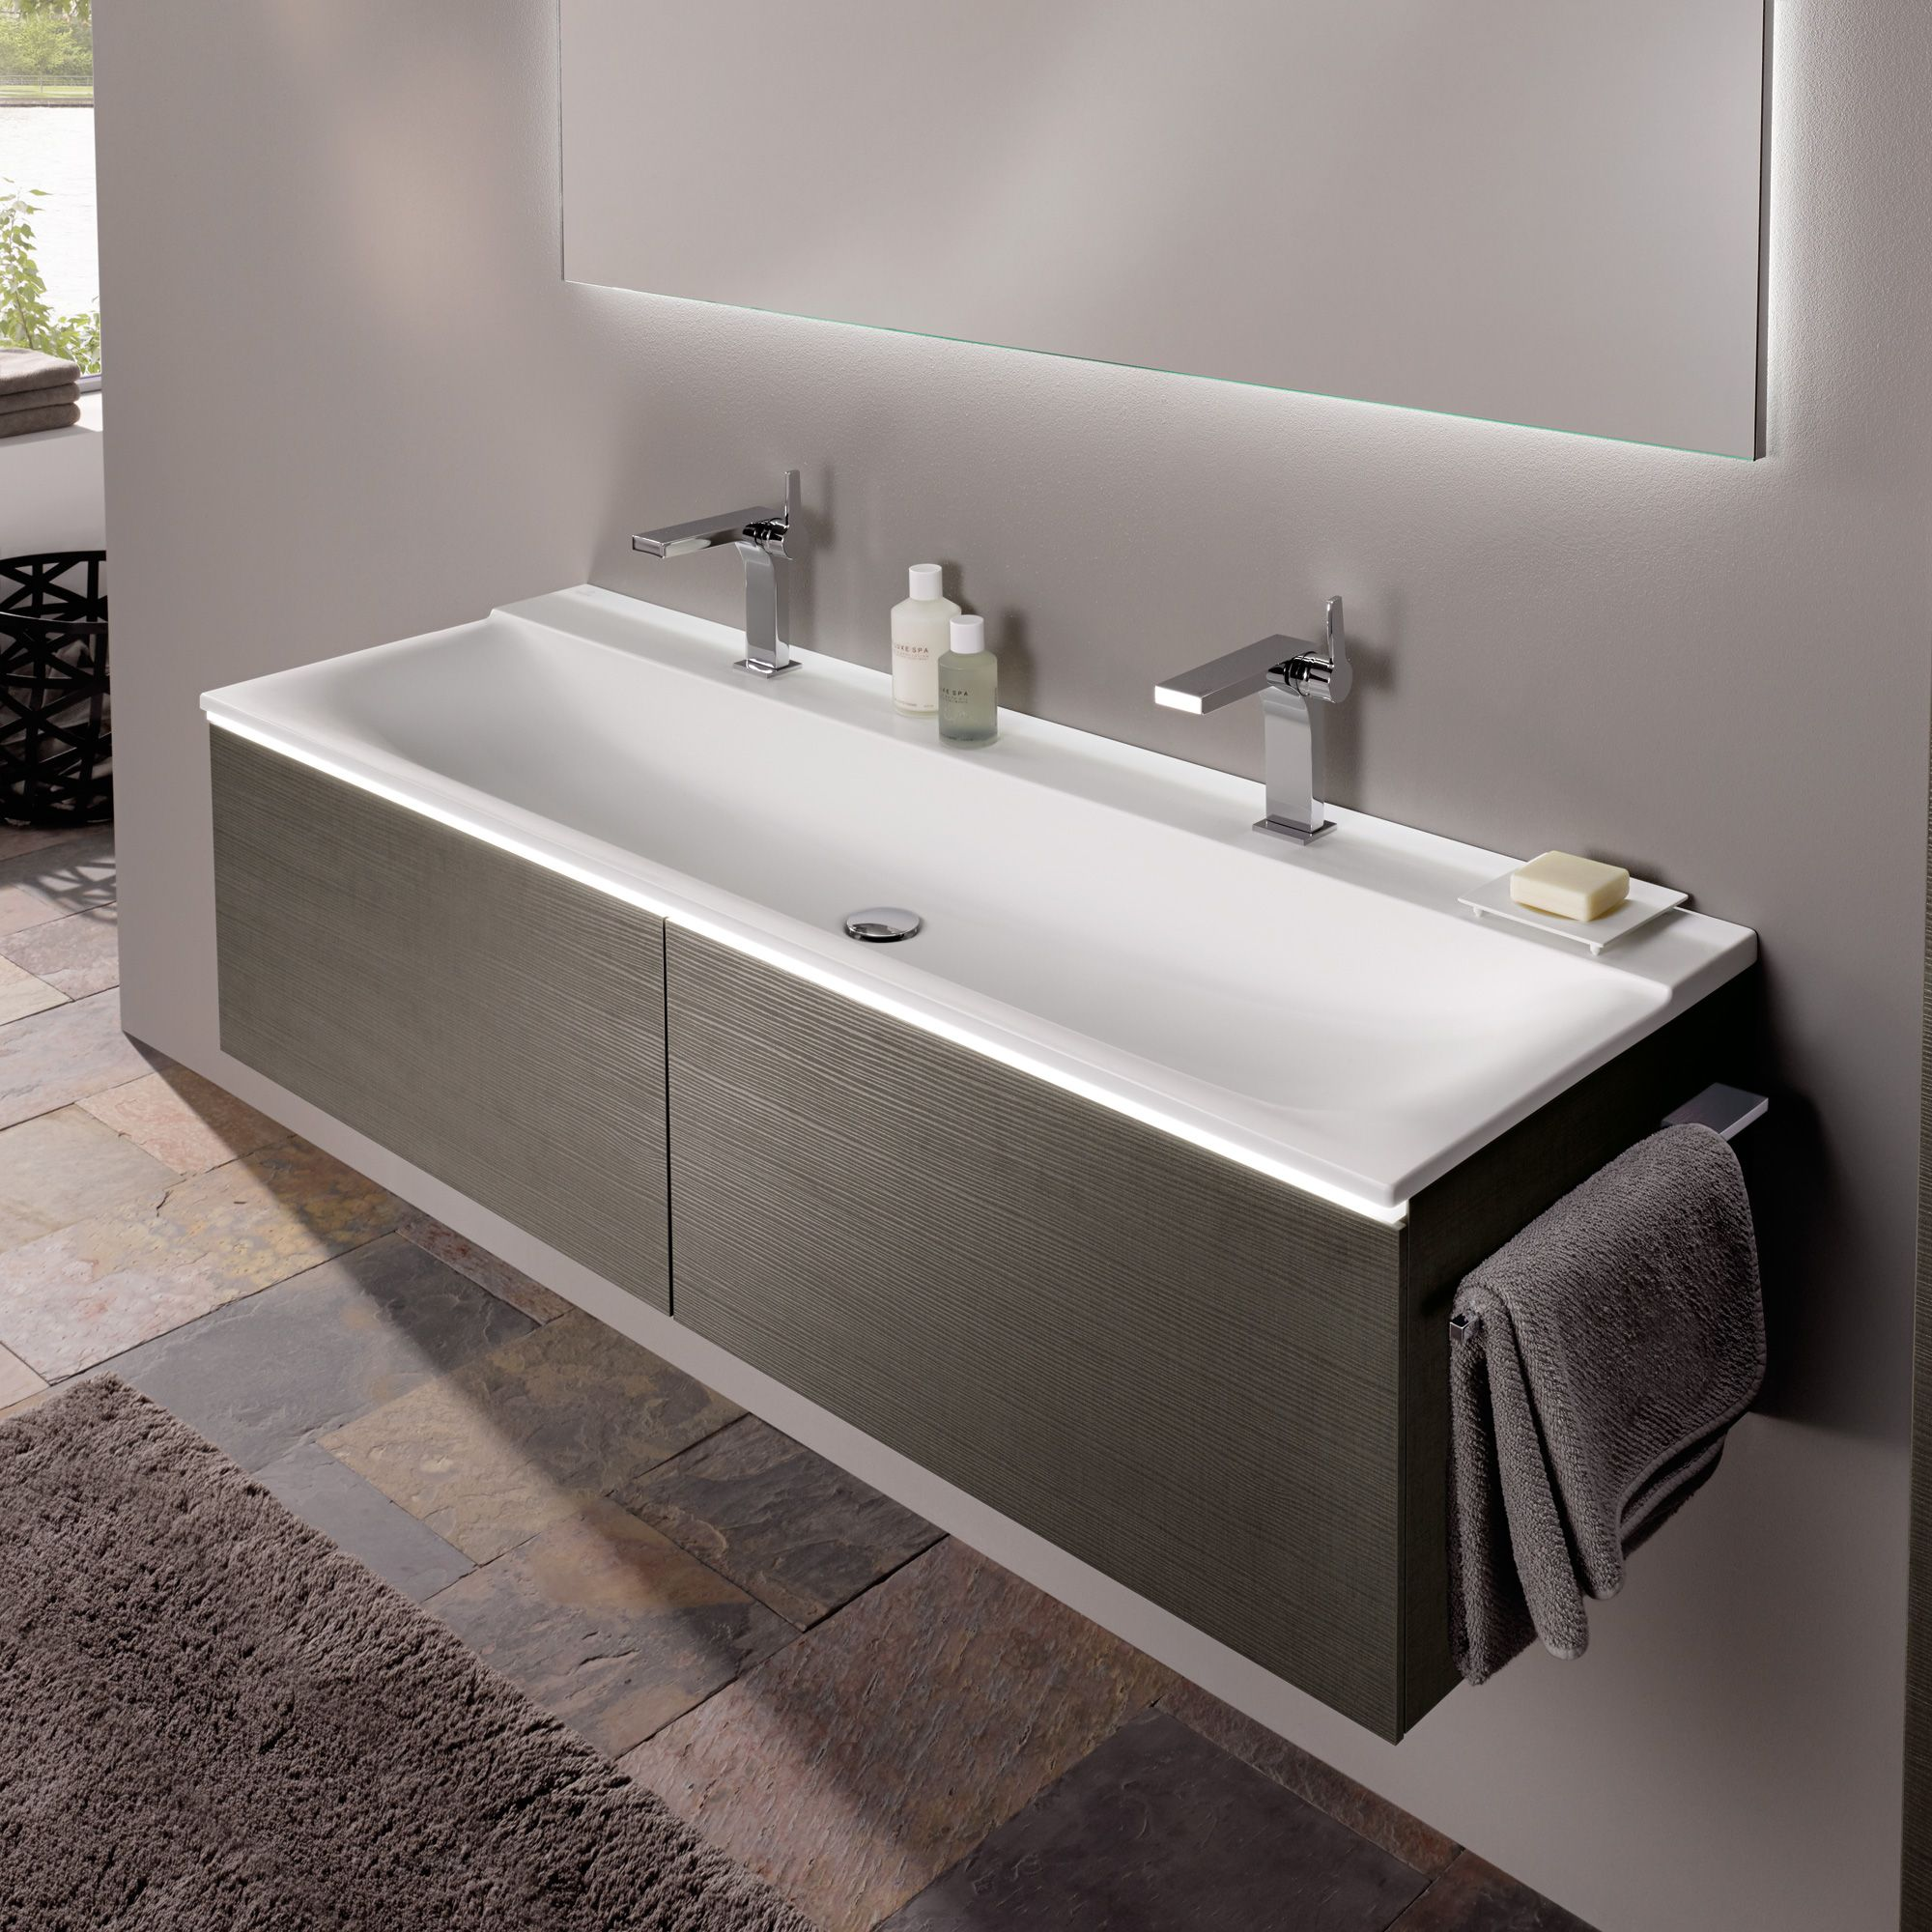 Xeno 2 Bathroom Furniture Google Search Mit Bildern